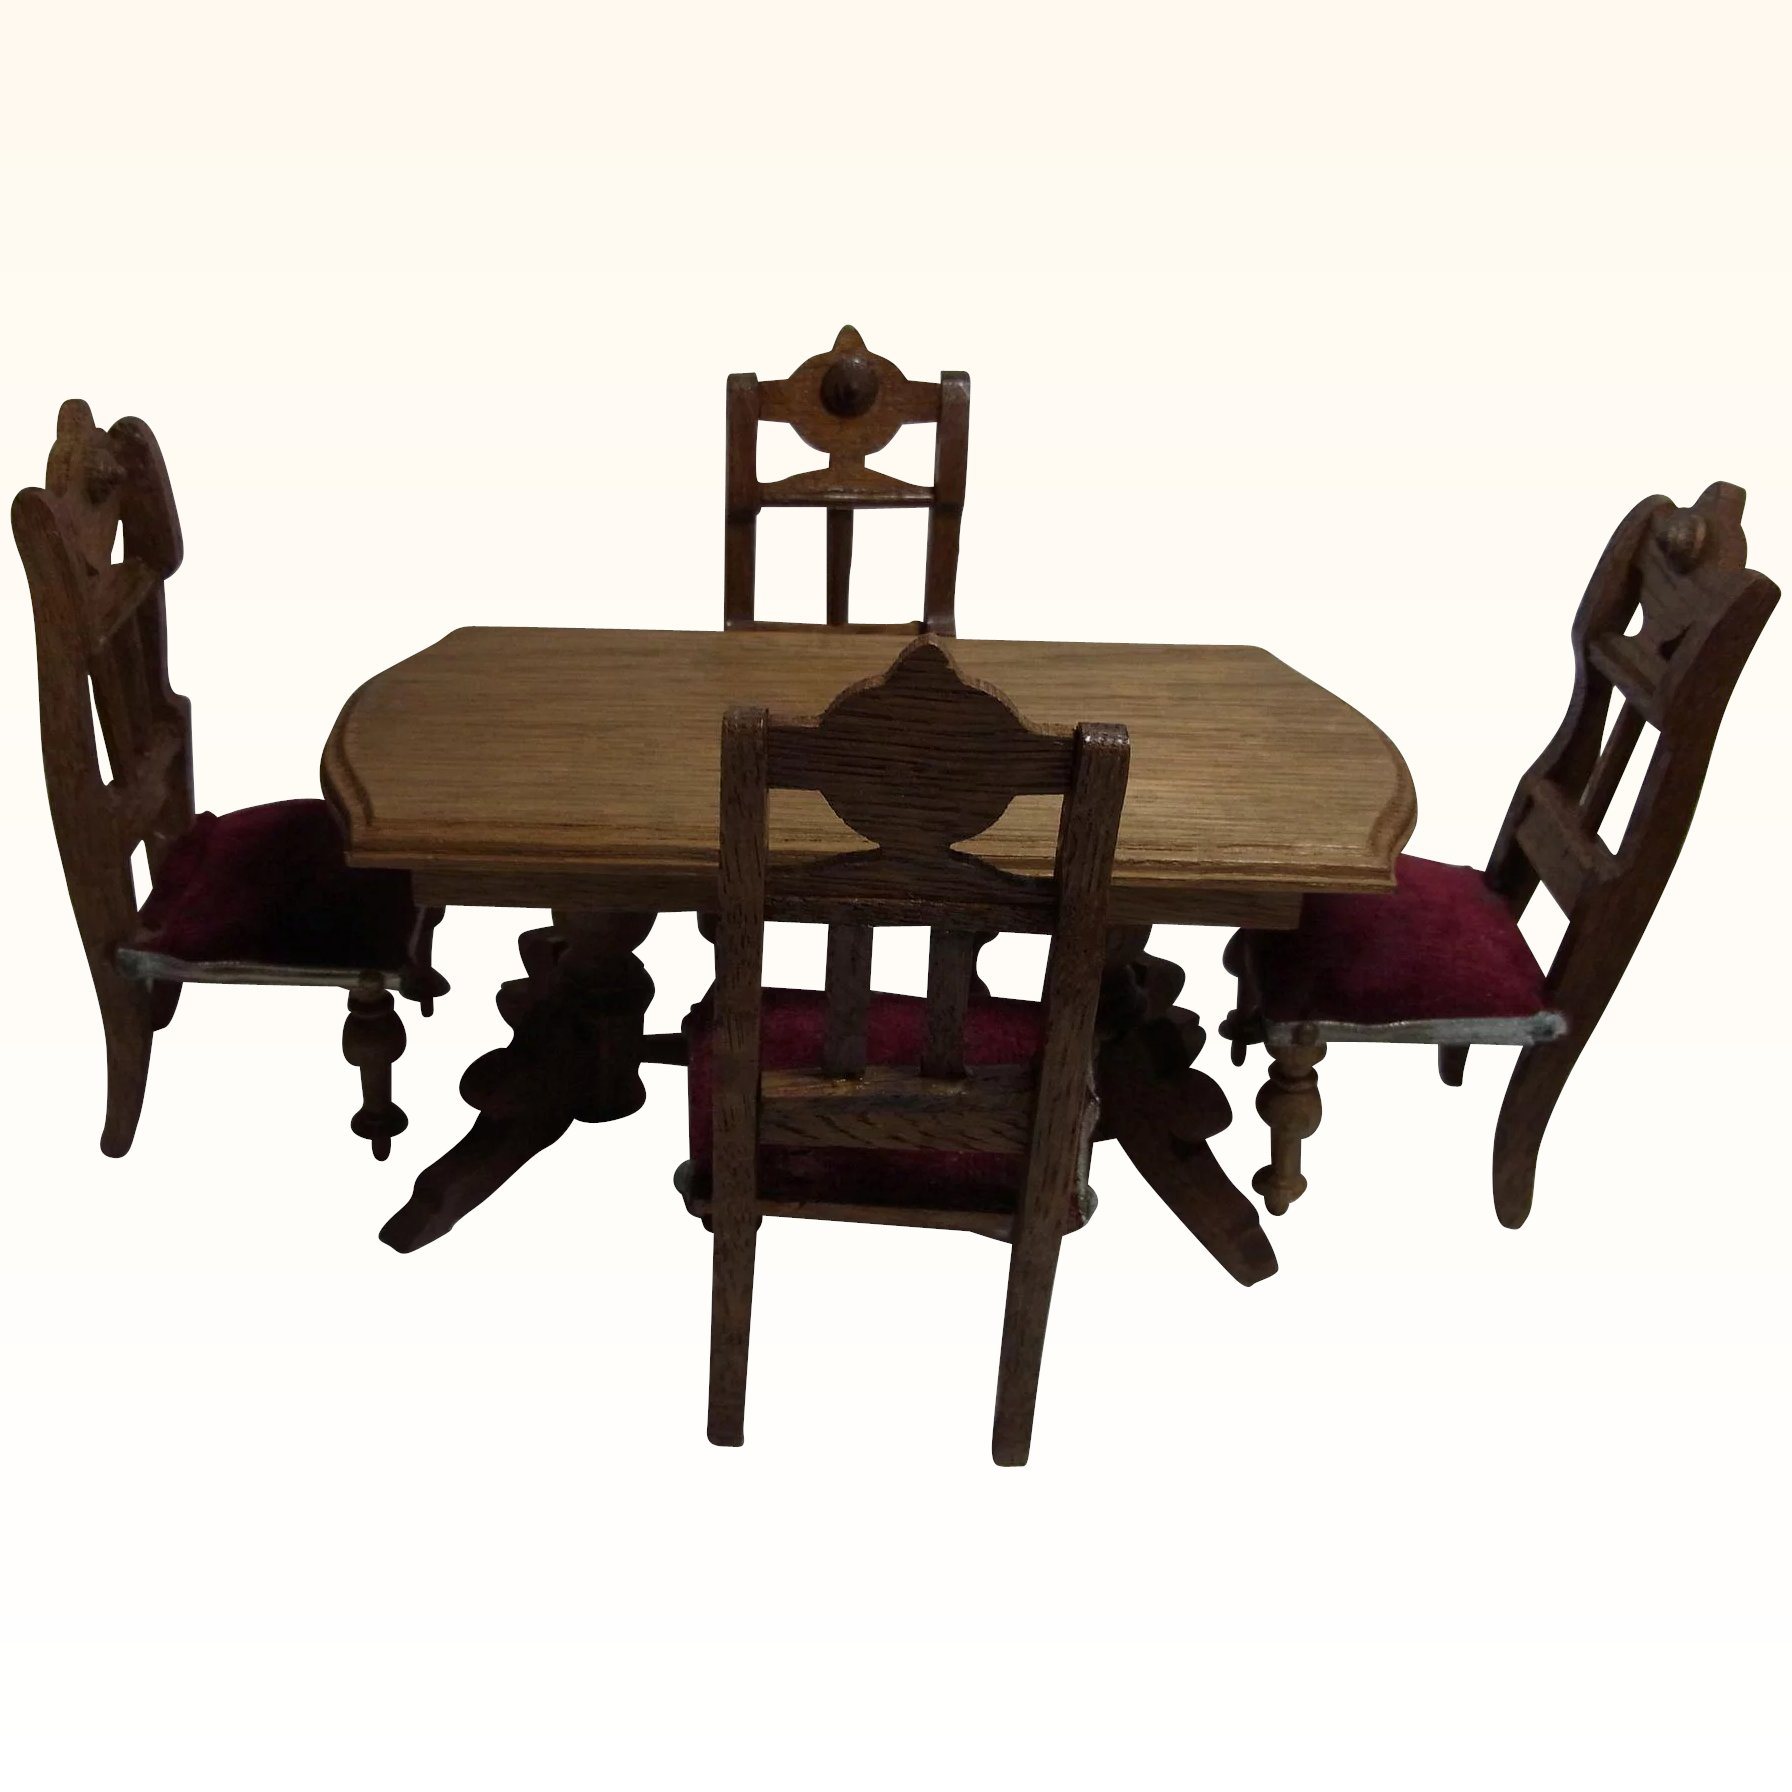 Antique German Dollhouse Dining Room Table 4 Chair Historismus